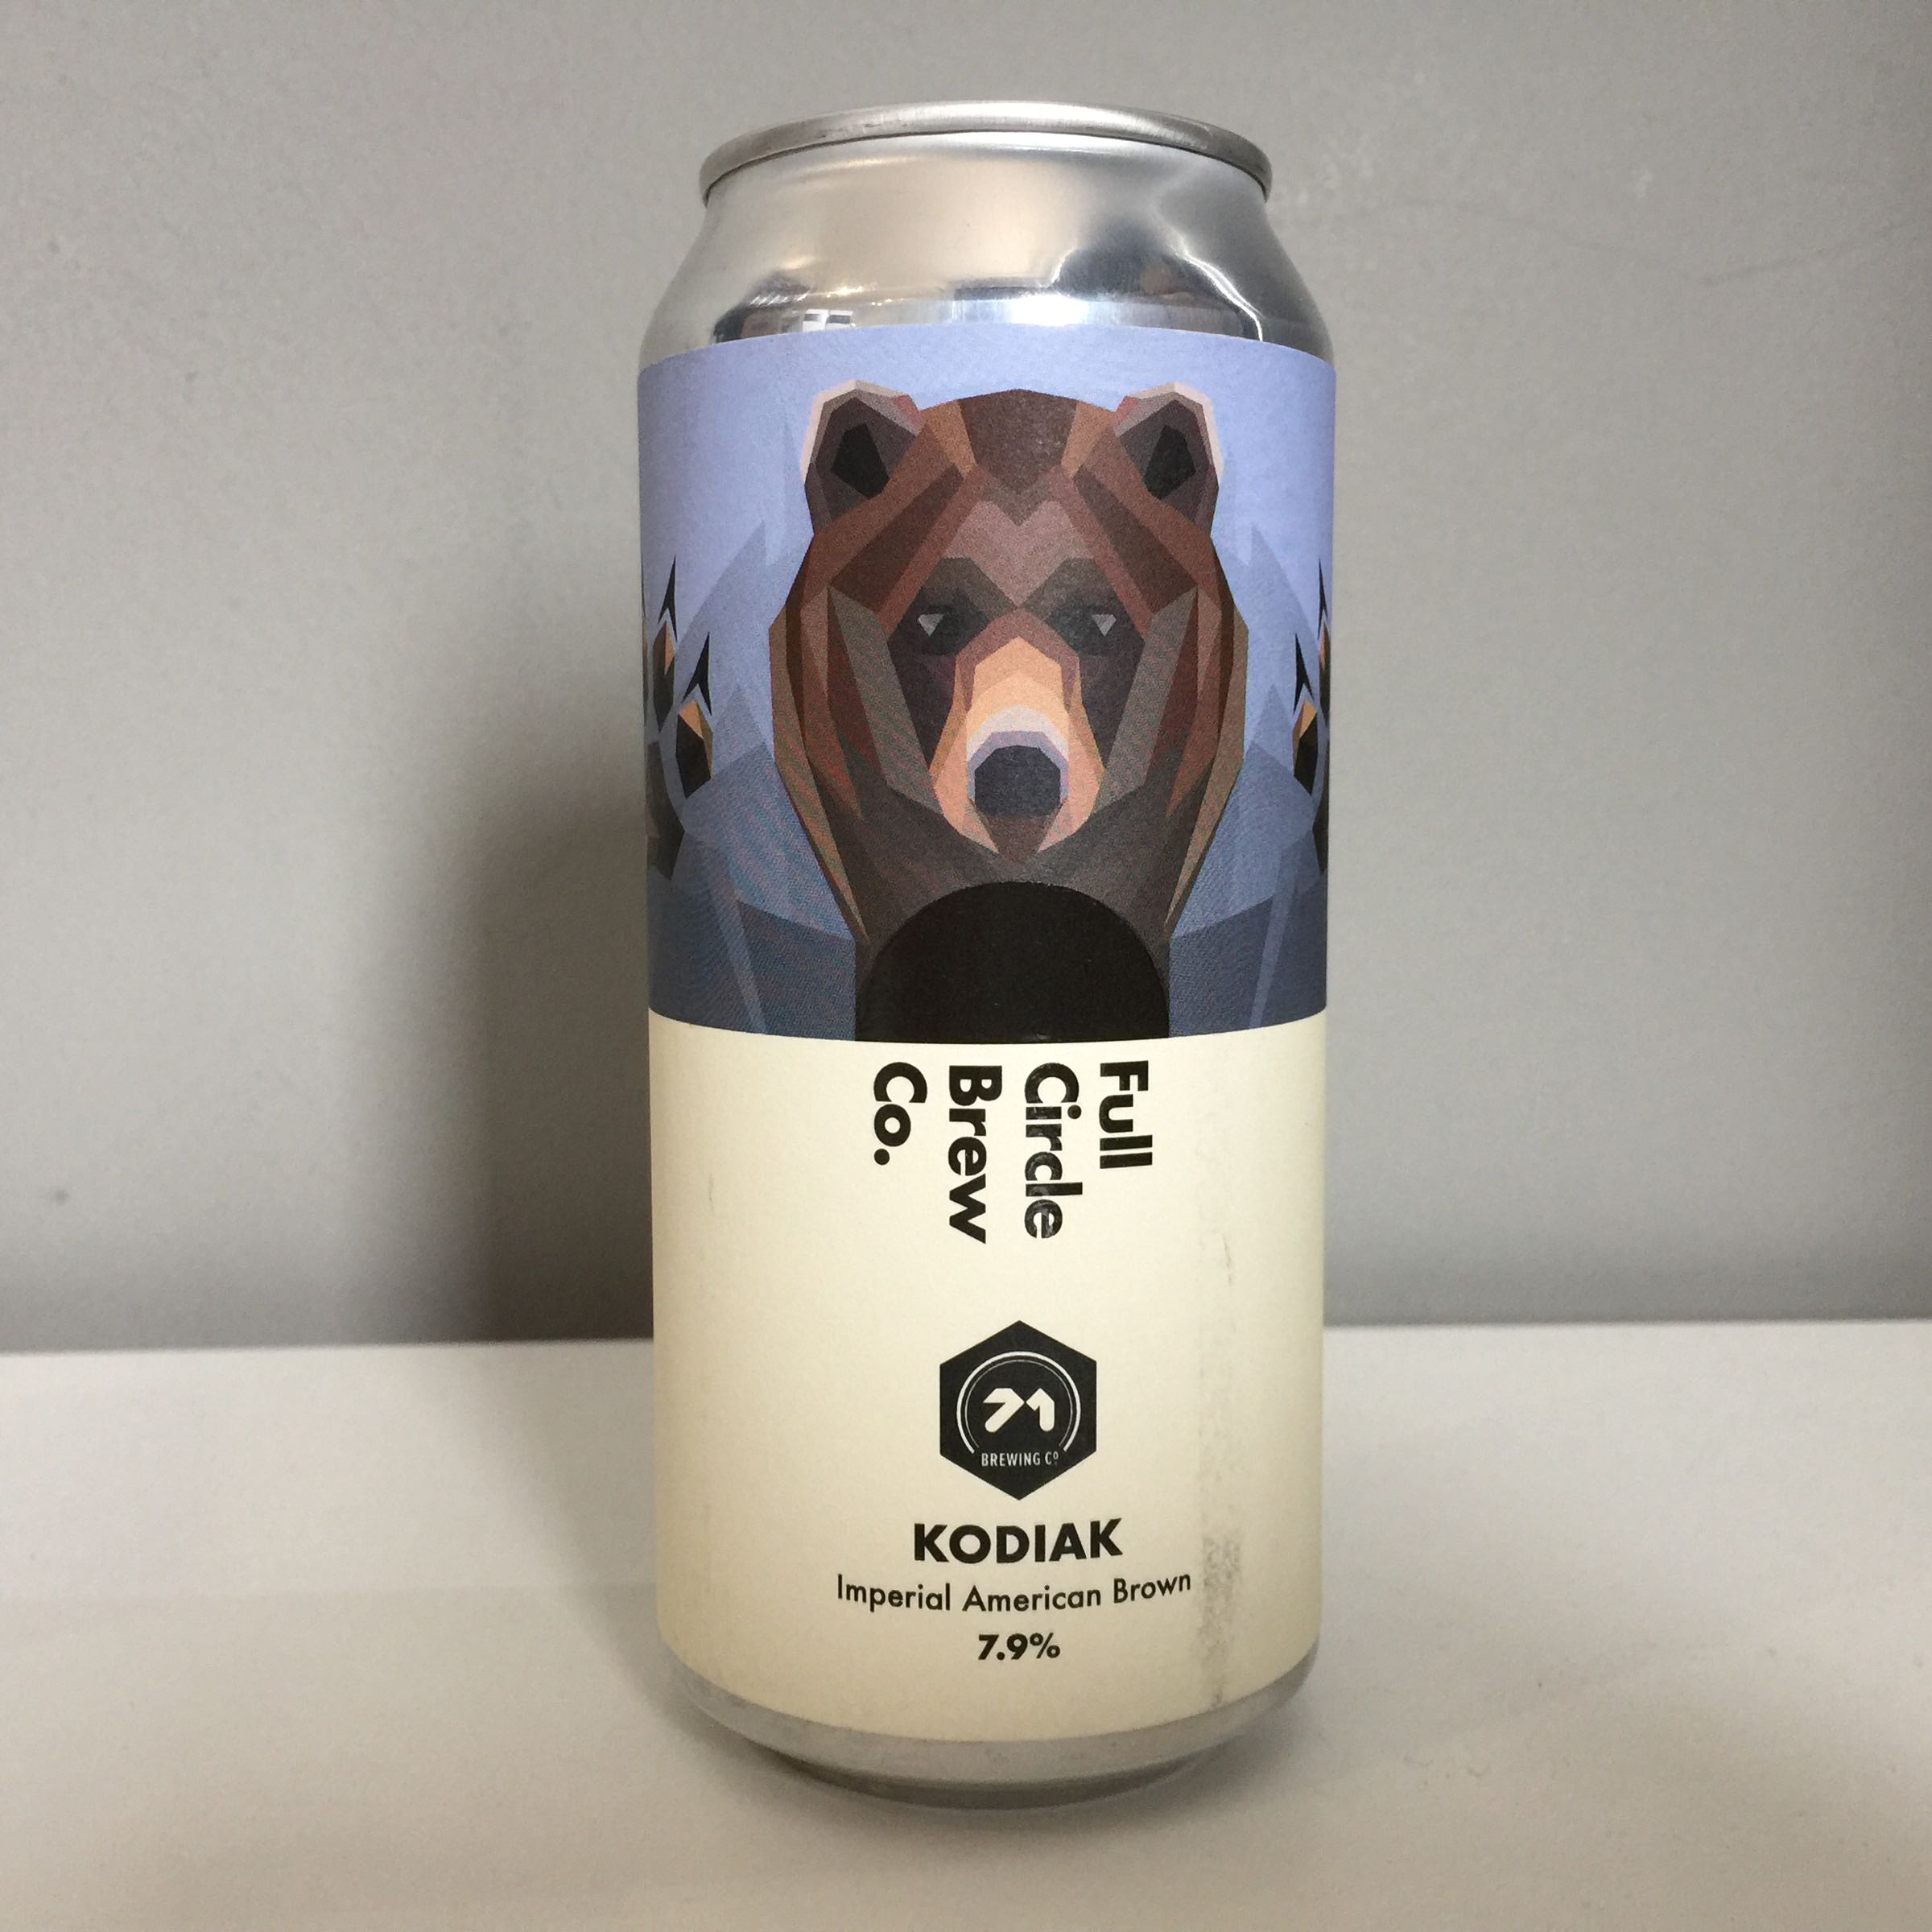 Full Circle Brewing Co. 'Kodiak' Imperial American Brown 440ml 7.9% ABV